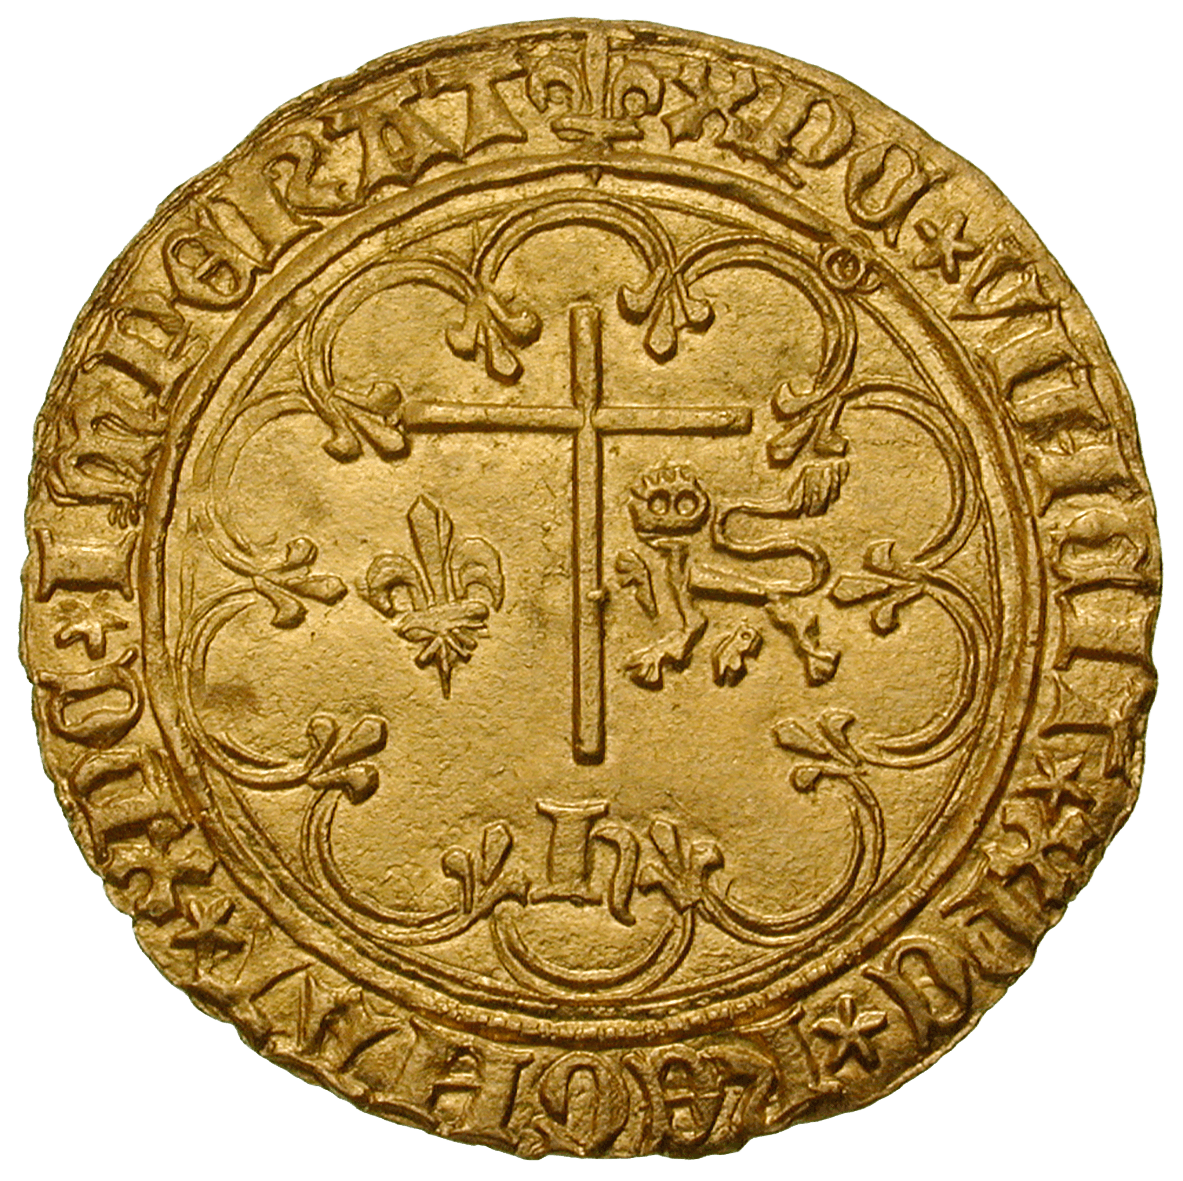 Kingdoms of England and France, Henry VI, Salut d'or (reverse)